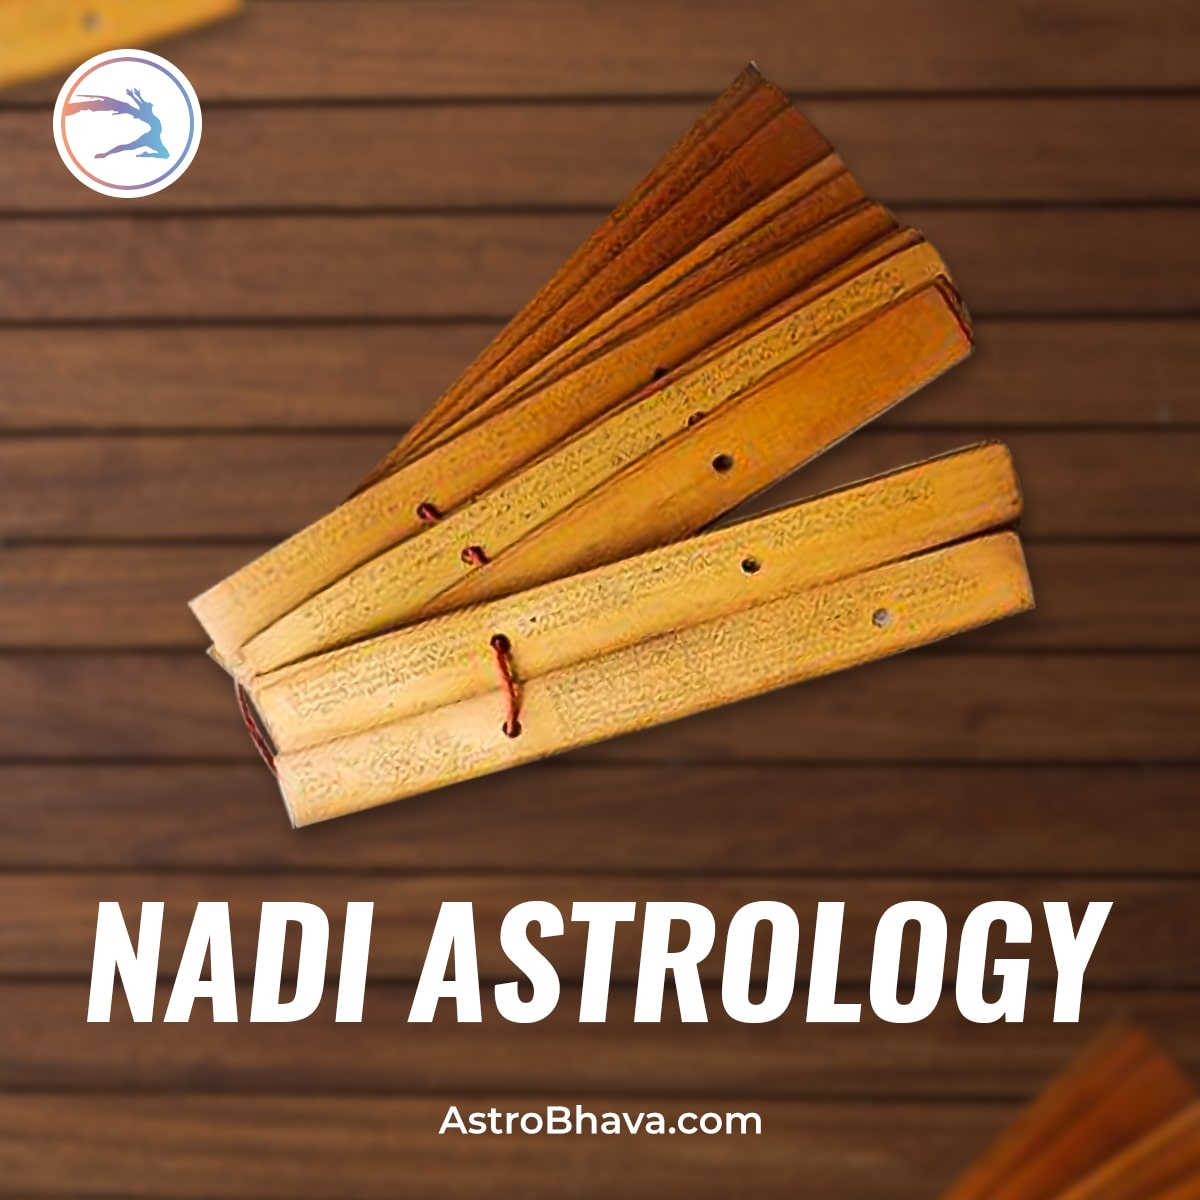 Get the Best Online Nadi Astrology Consultation from AstroBhava